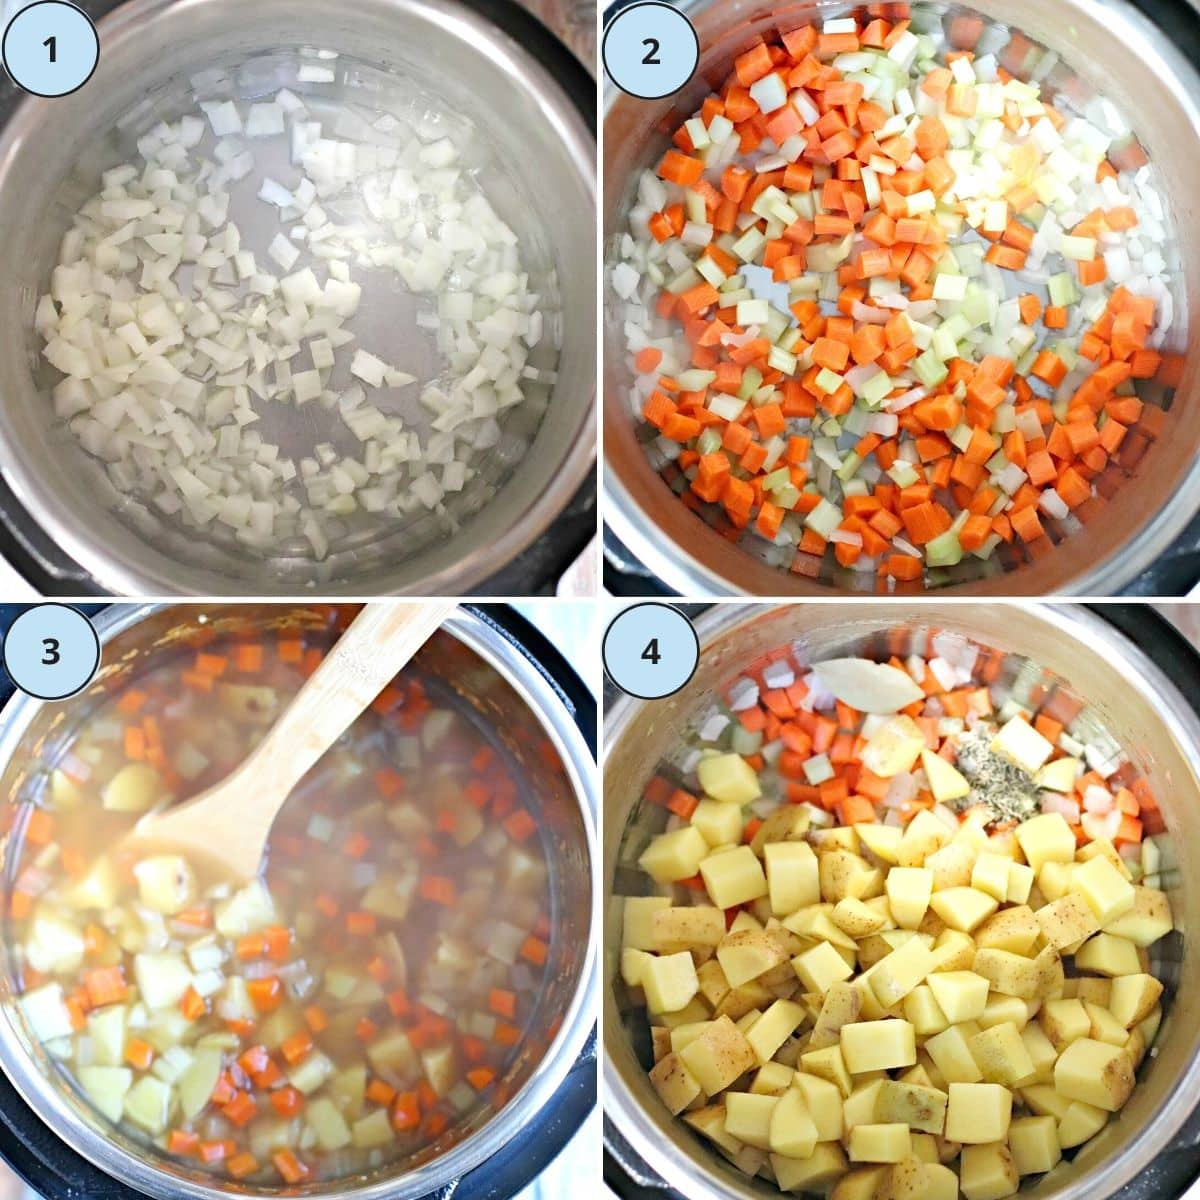 Collage of images showing steps 1 through 4 for making this recipe